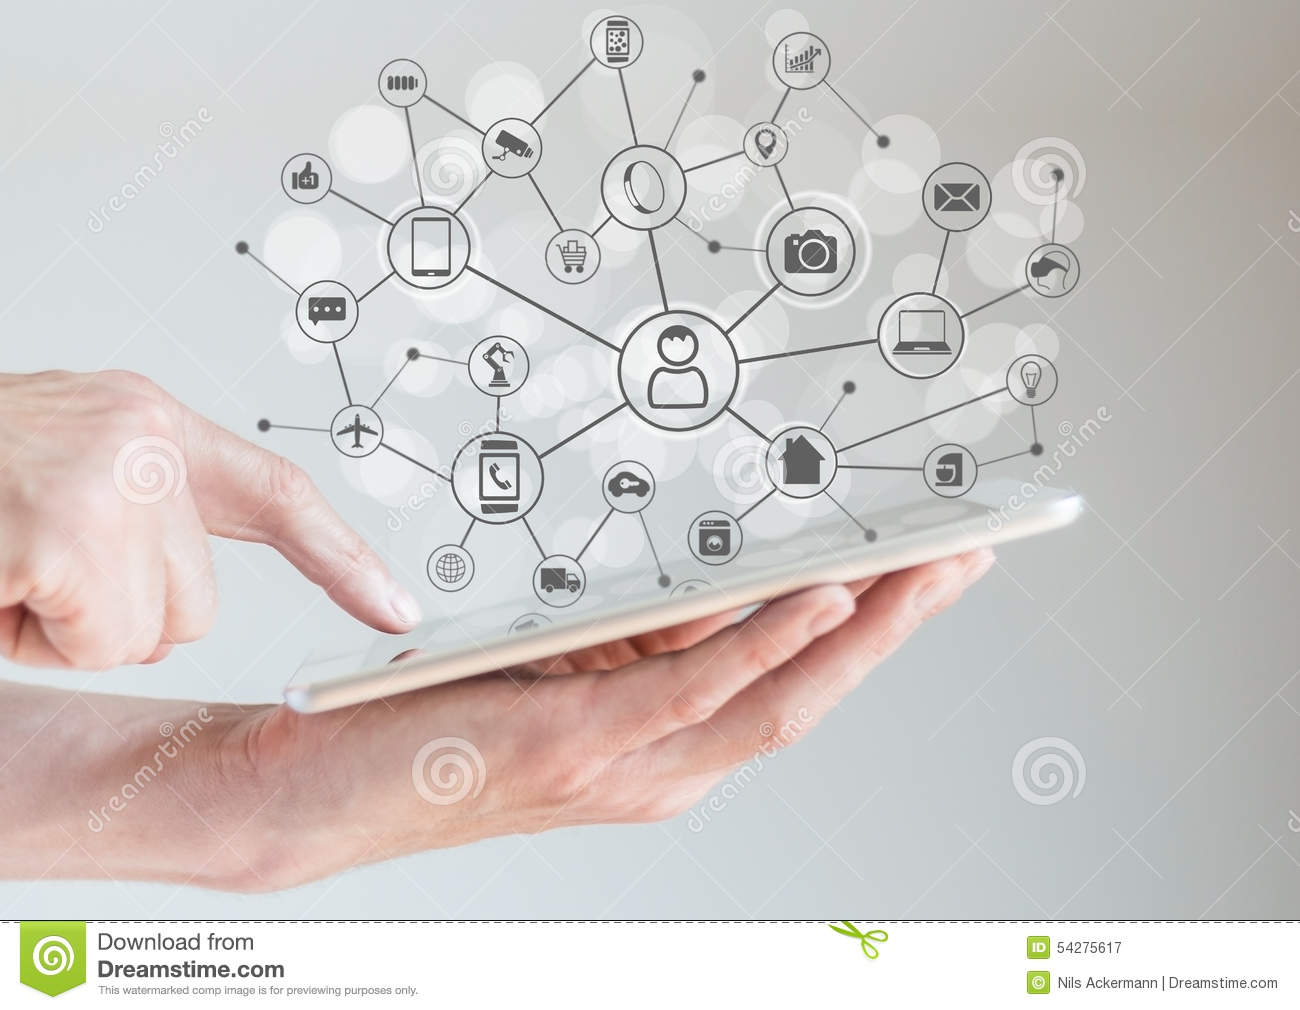 Internet of Things concept (IoT) with male hands holding tablet or large smart phone